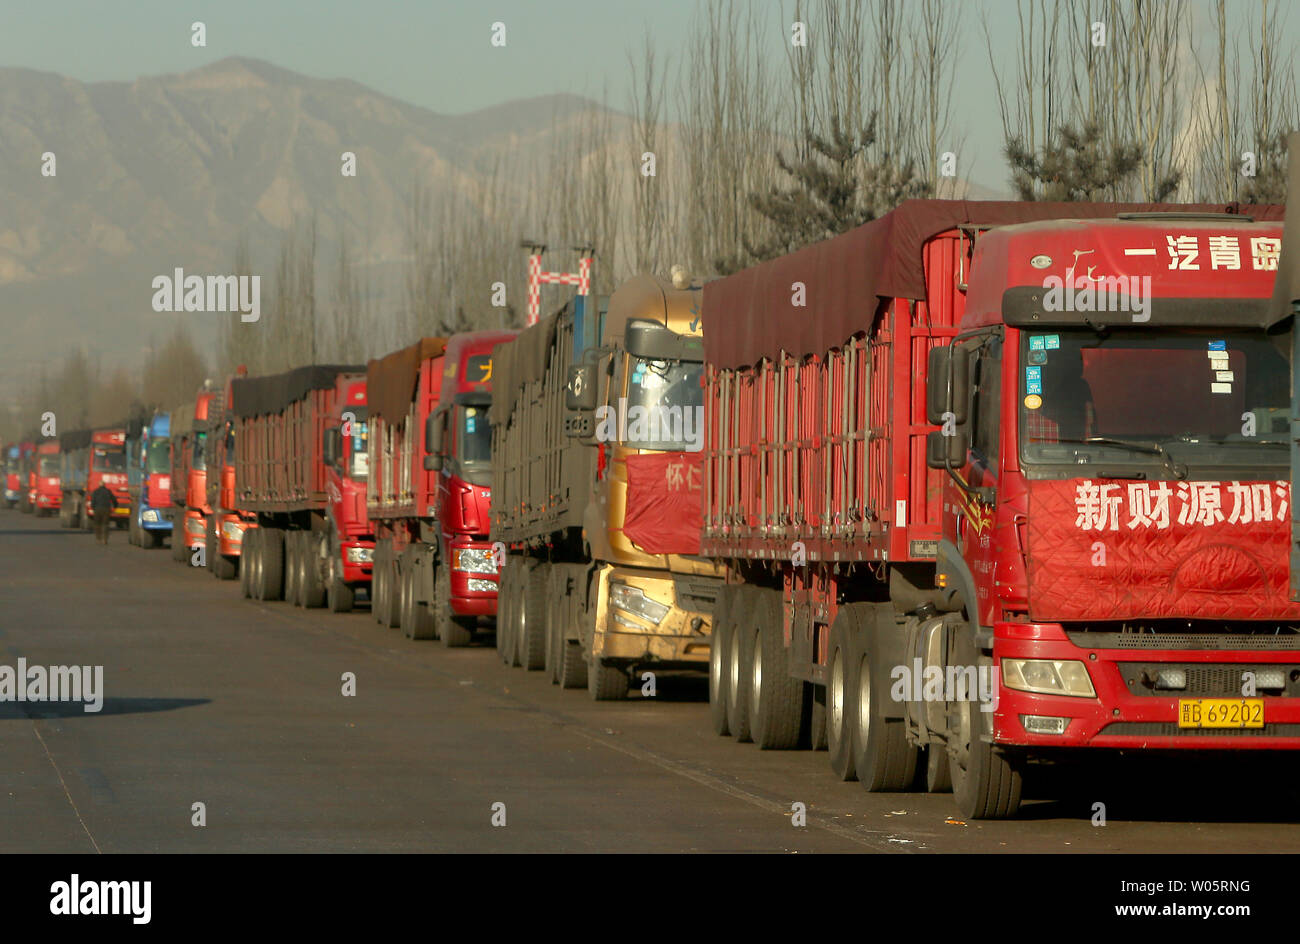 Coal trucks parked outside a mine wait for the green-light to pickup a load of coal in Datong, Shanxi Province (China's coal country), on December 12, 2018.  China is the largest producer and consumer of coal in the world, making it the leading emitter of greenhouse gases from coal.  China burns much more coal than reported, which has continued to complicate climate talks.    Photo by Stephen Shaver/UPI.. Stock Photo